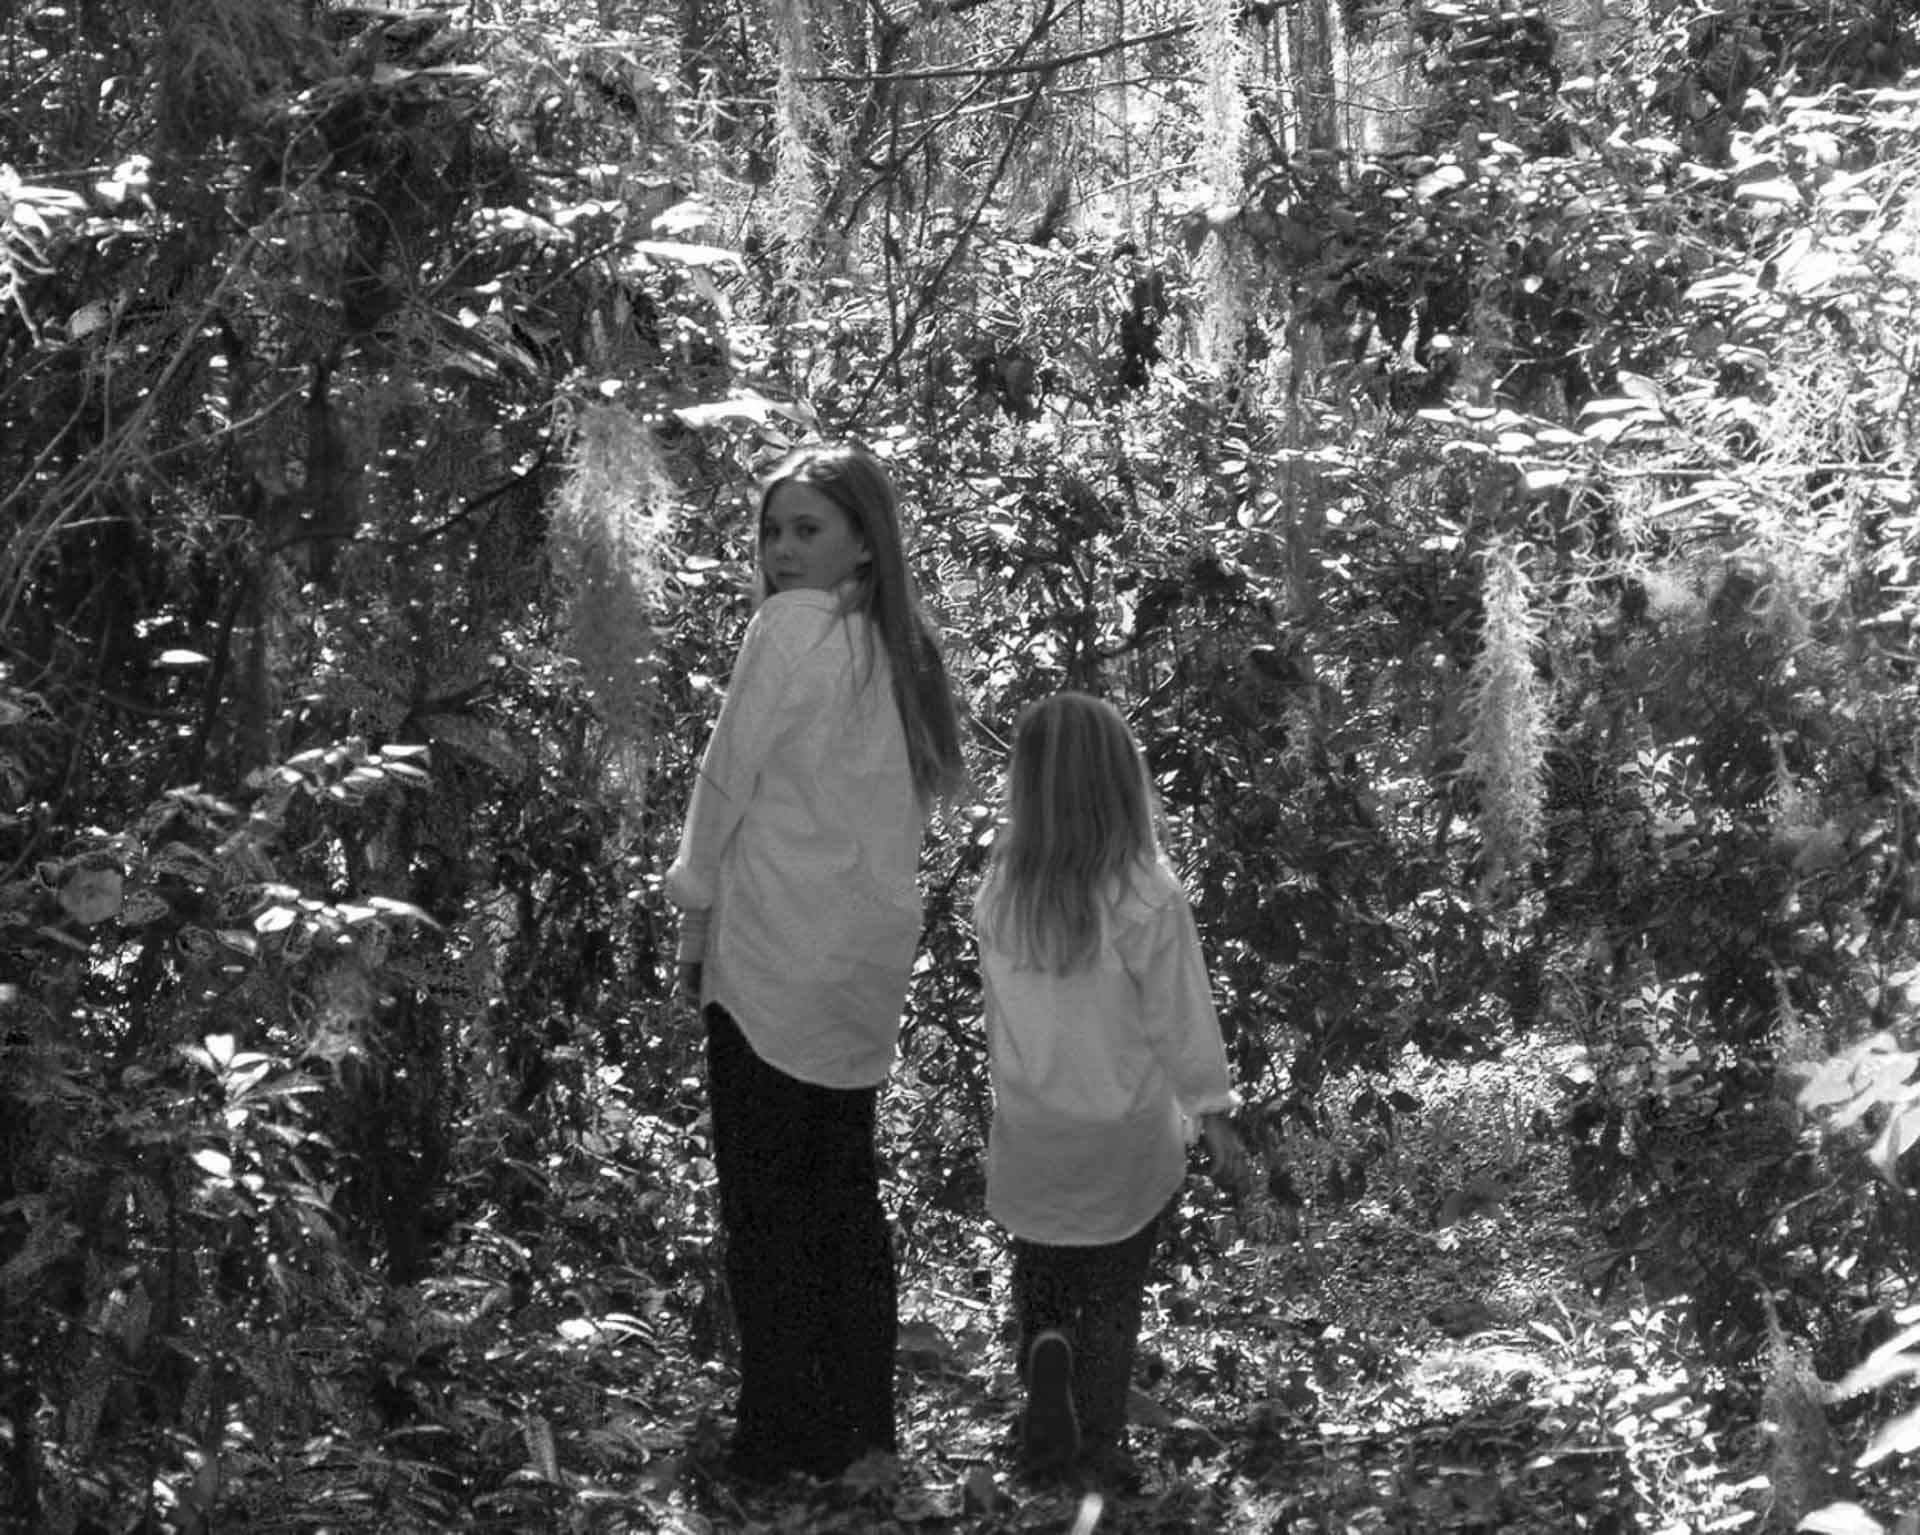 Children-walking-in-the-woods-black and white image